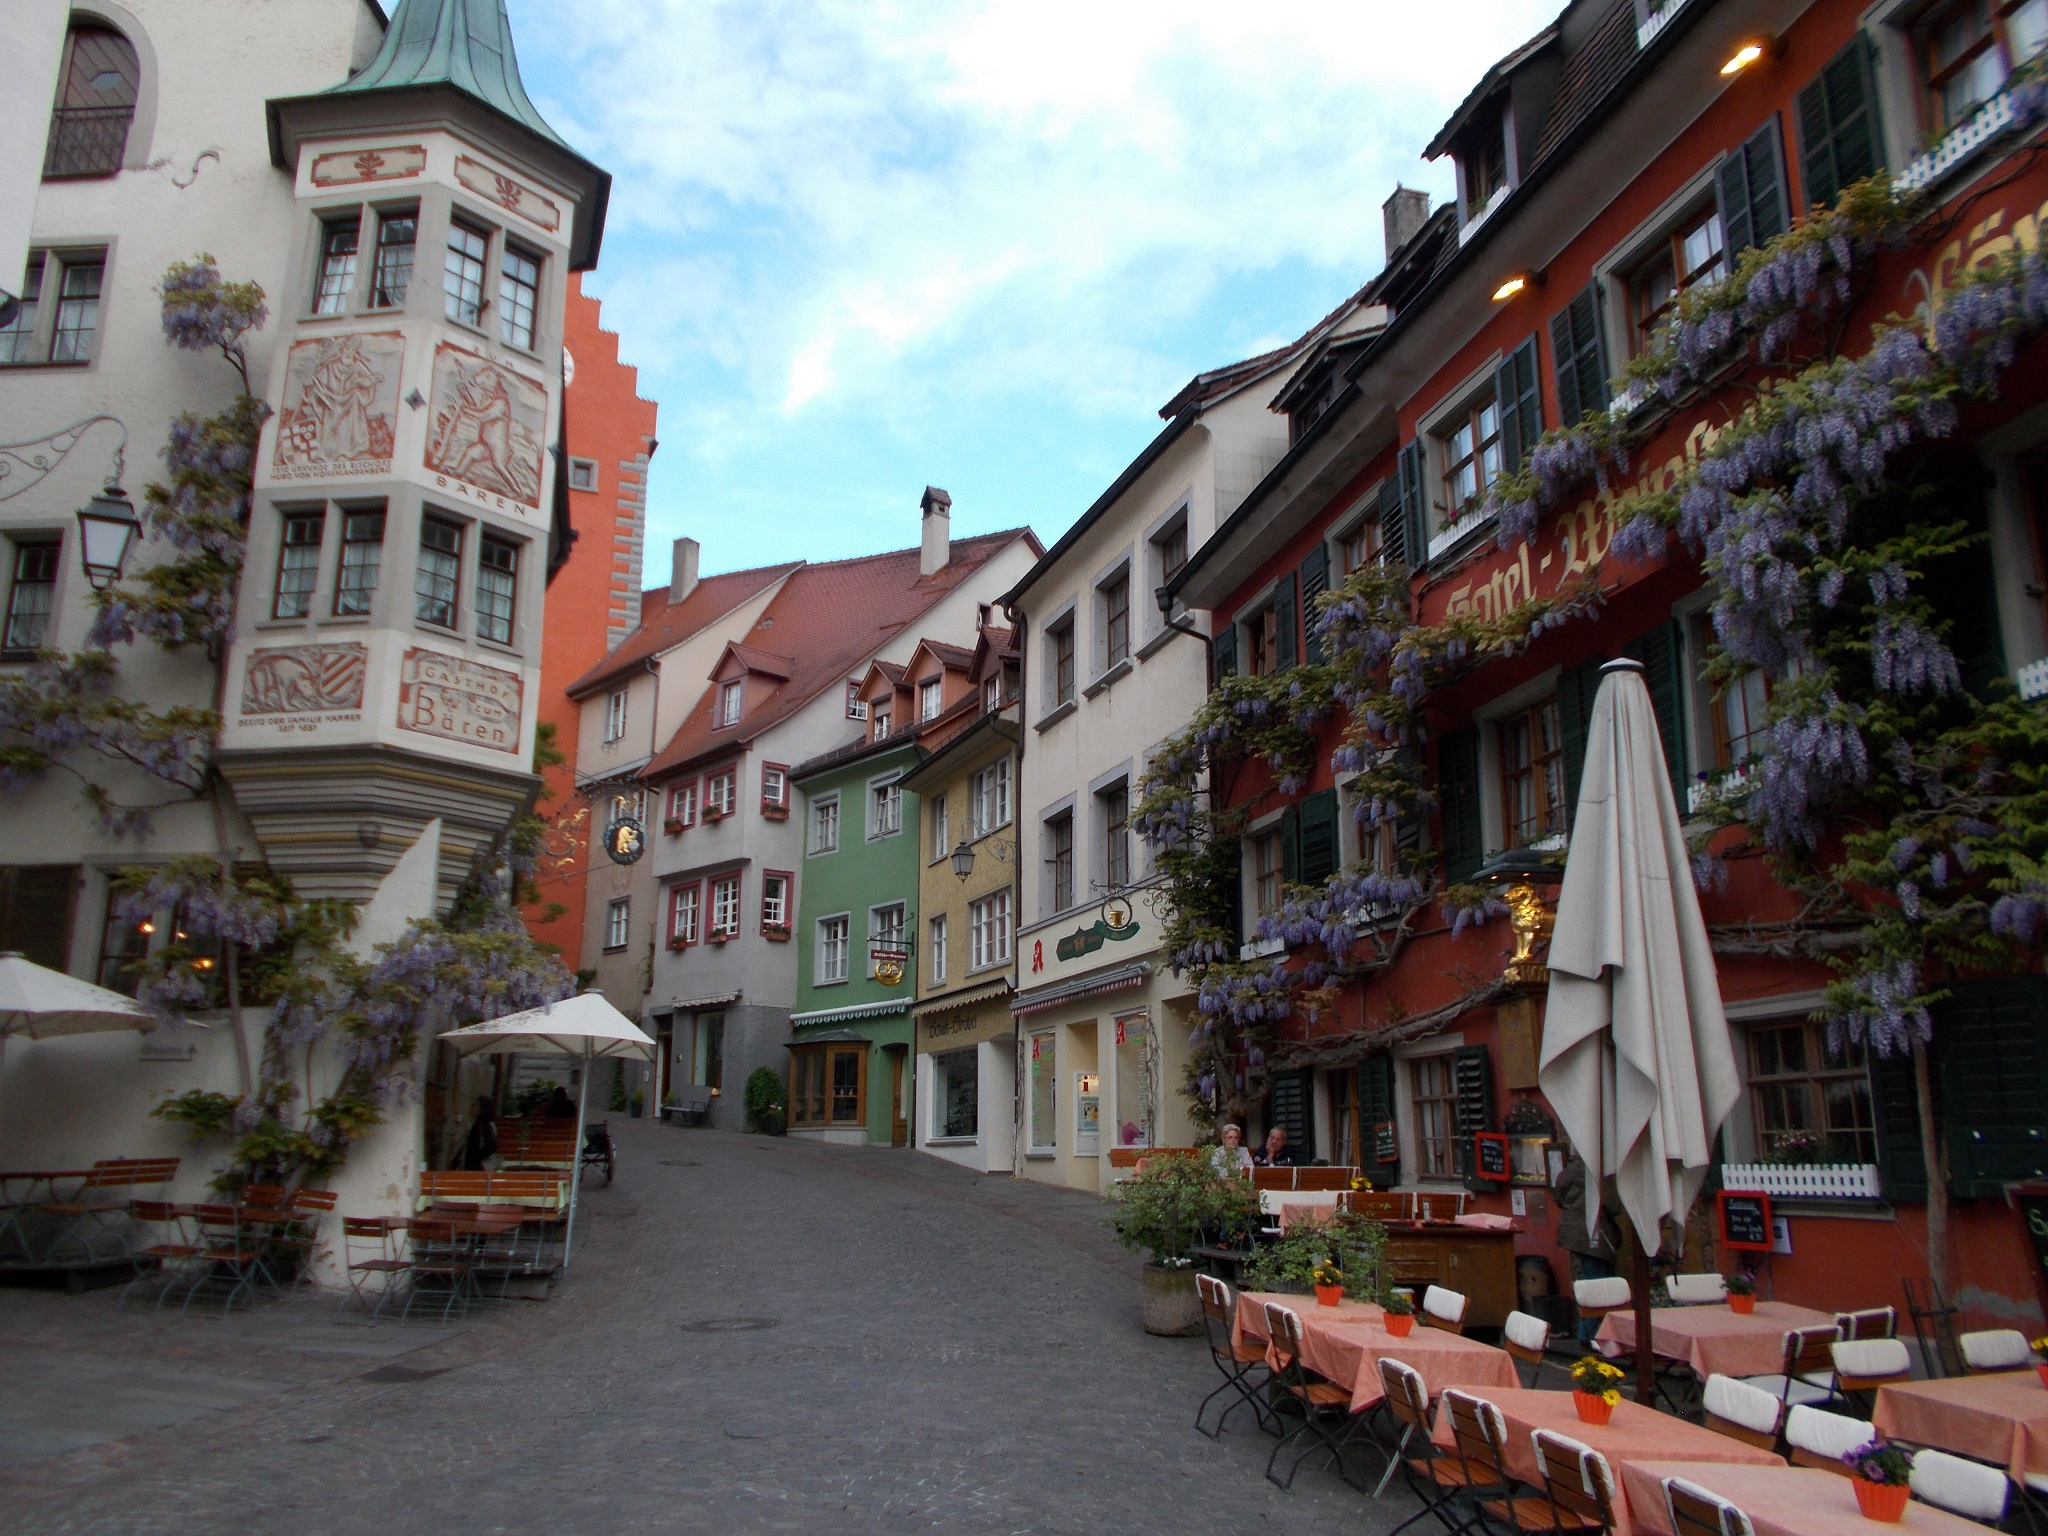 Colorful buildings lining a quiet pedestrian street in Meersburg, Germany.